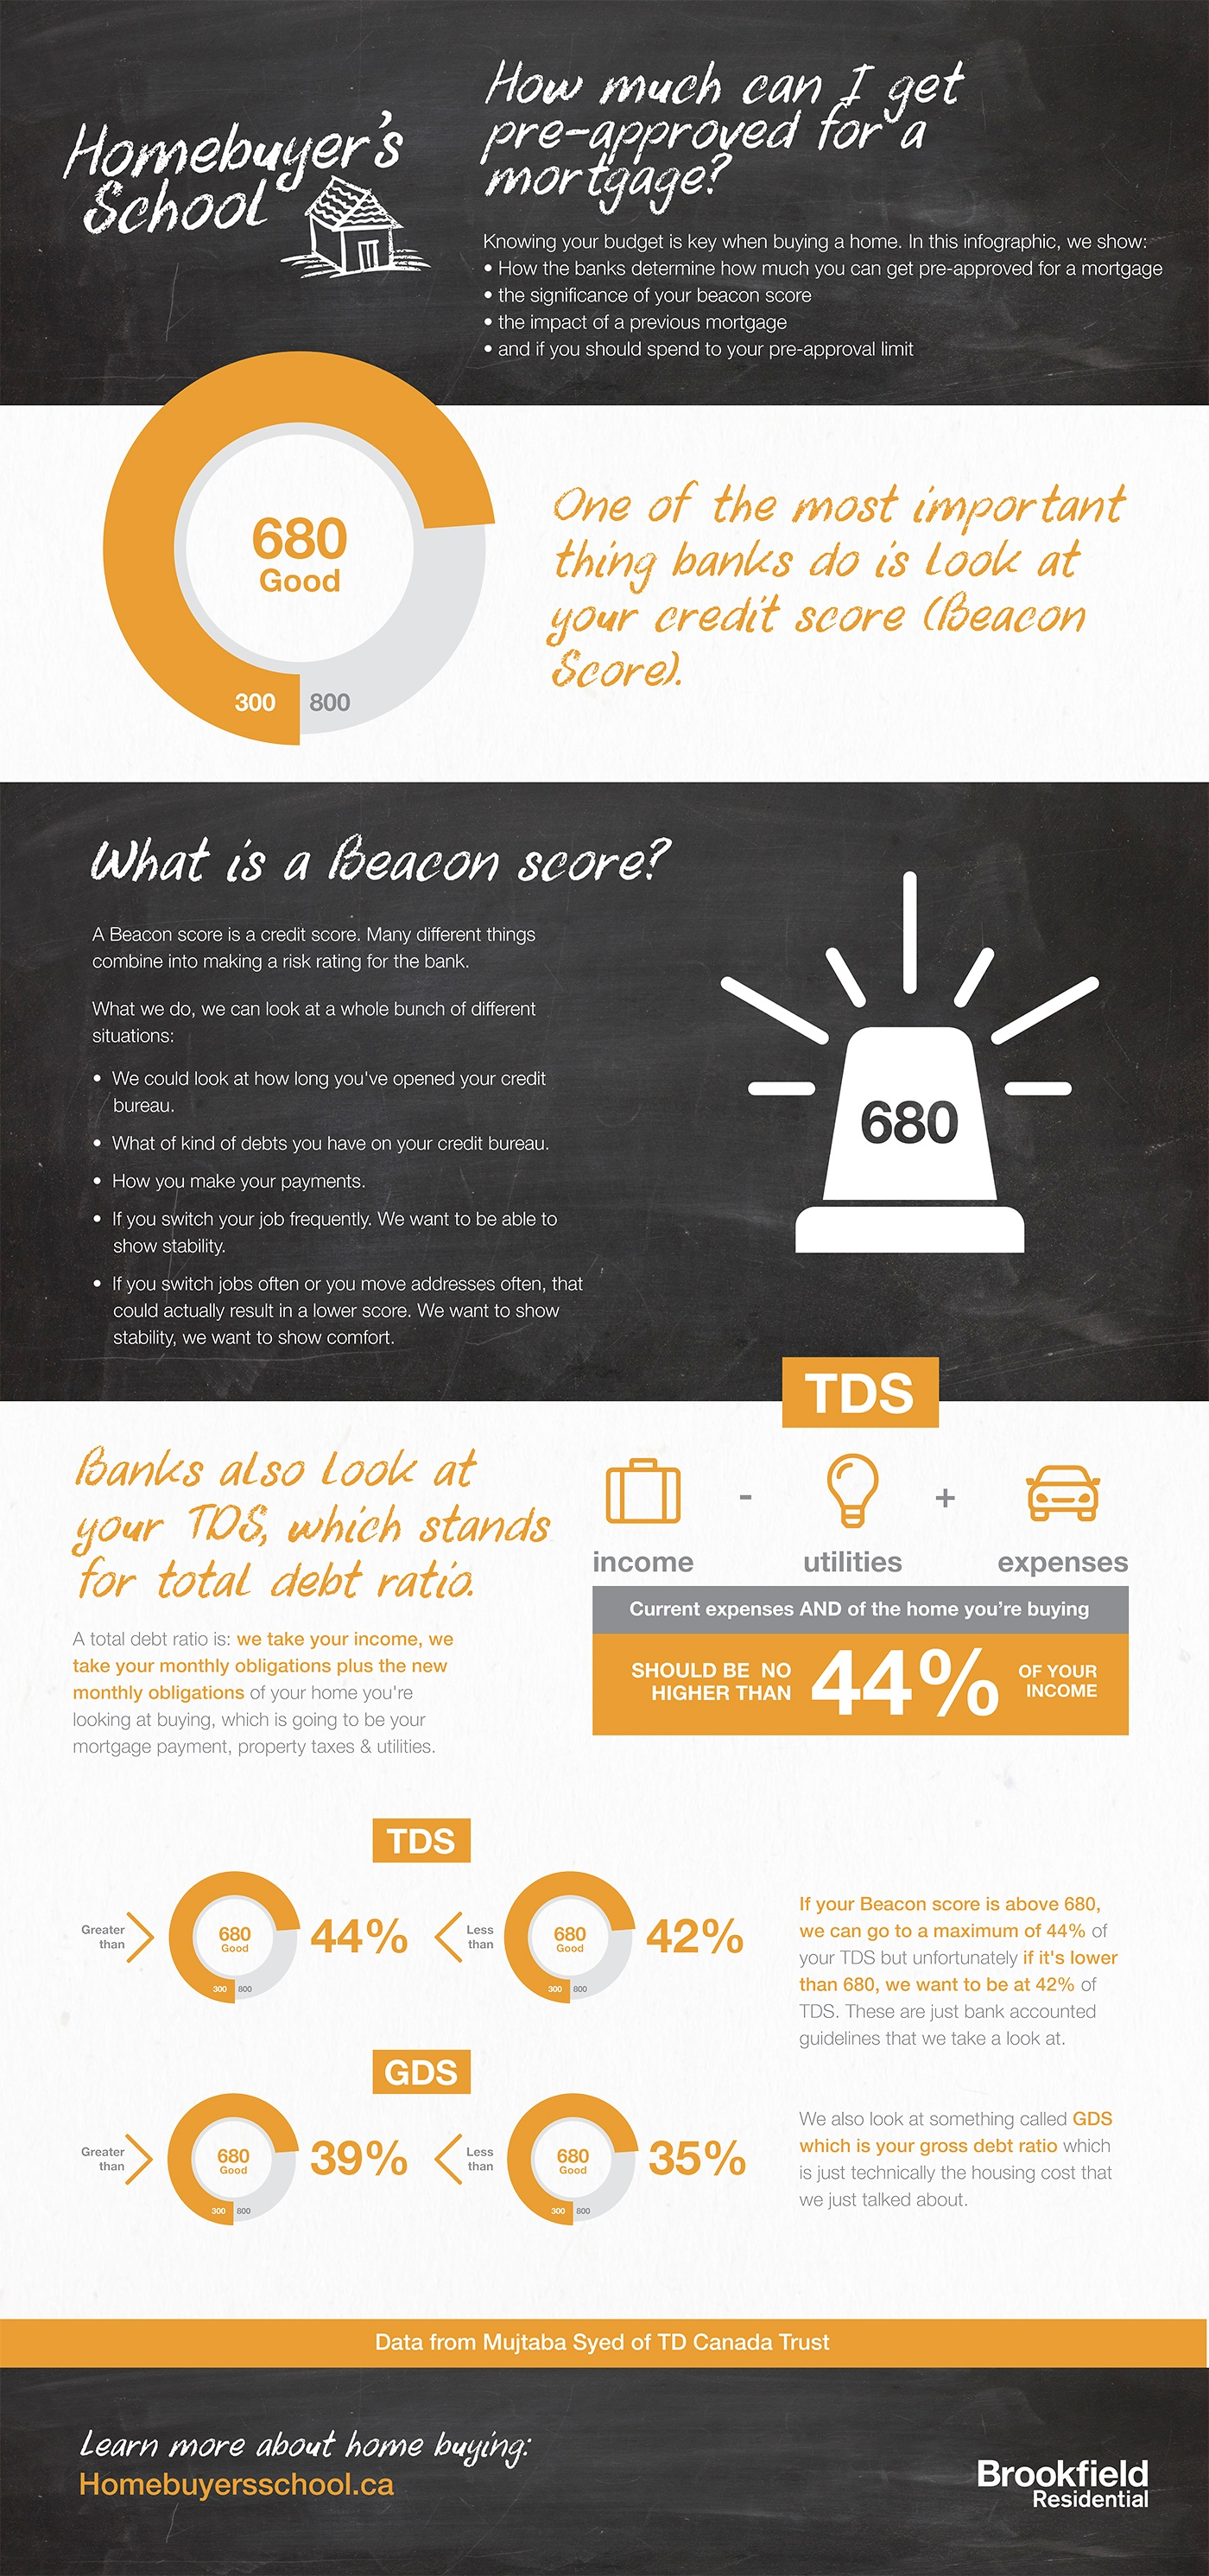 BRK-024 Mortgage Approval Infographic March 22.jpg